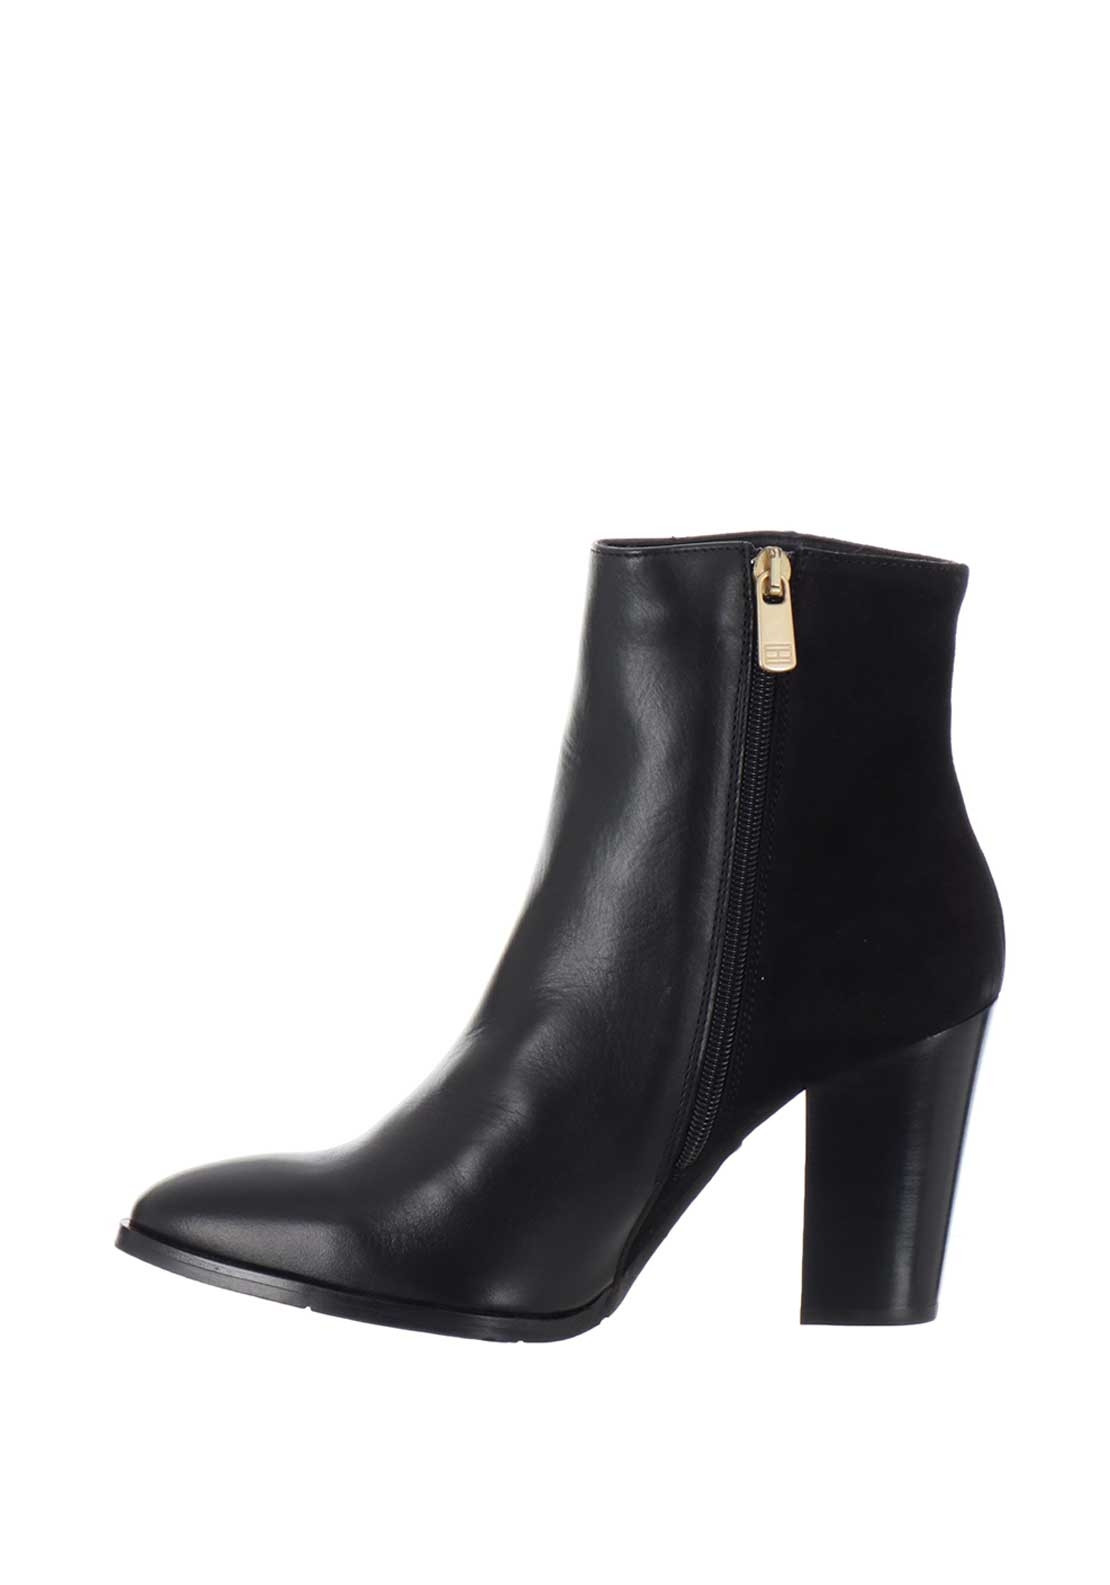 e0394d8b08 Tommy Hilfiger Womens Leather Star Ankle Boots, Black | McElhinneys